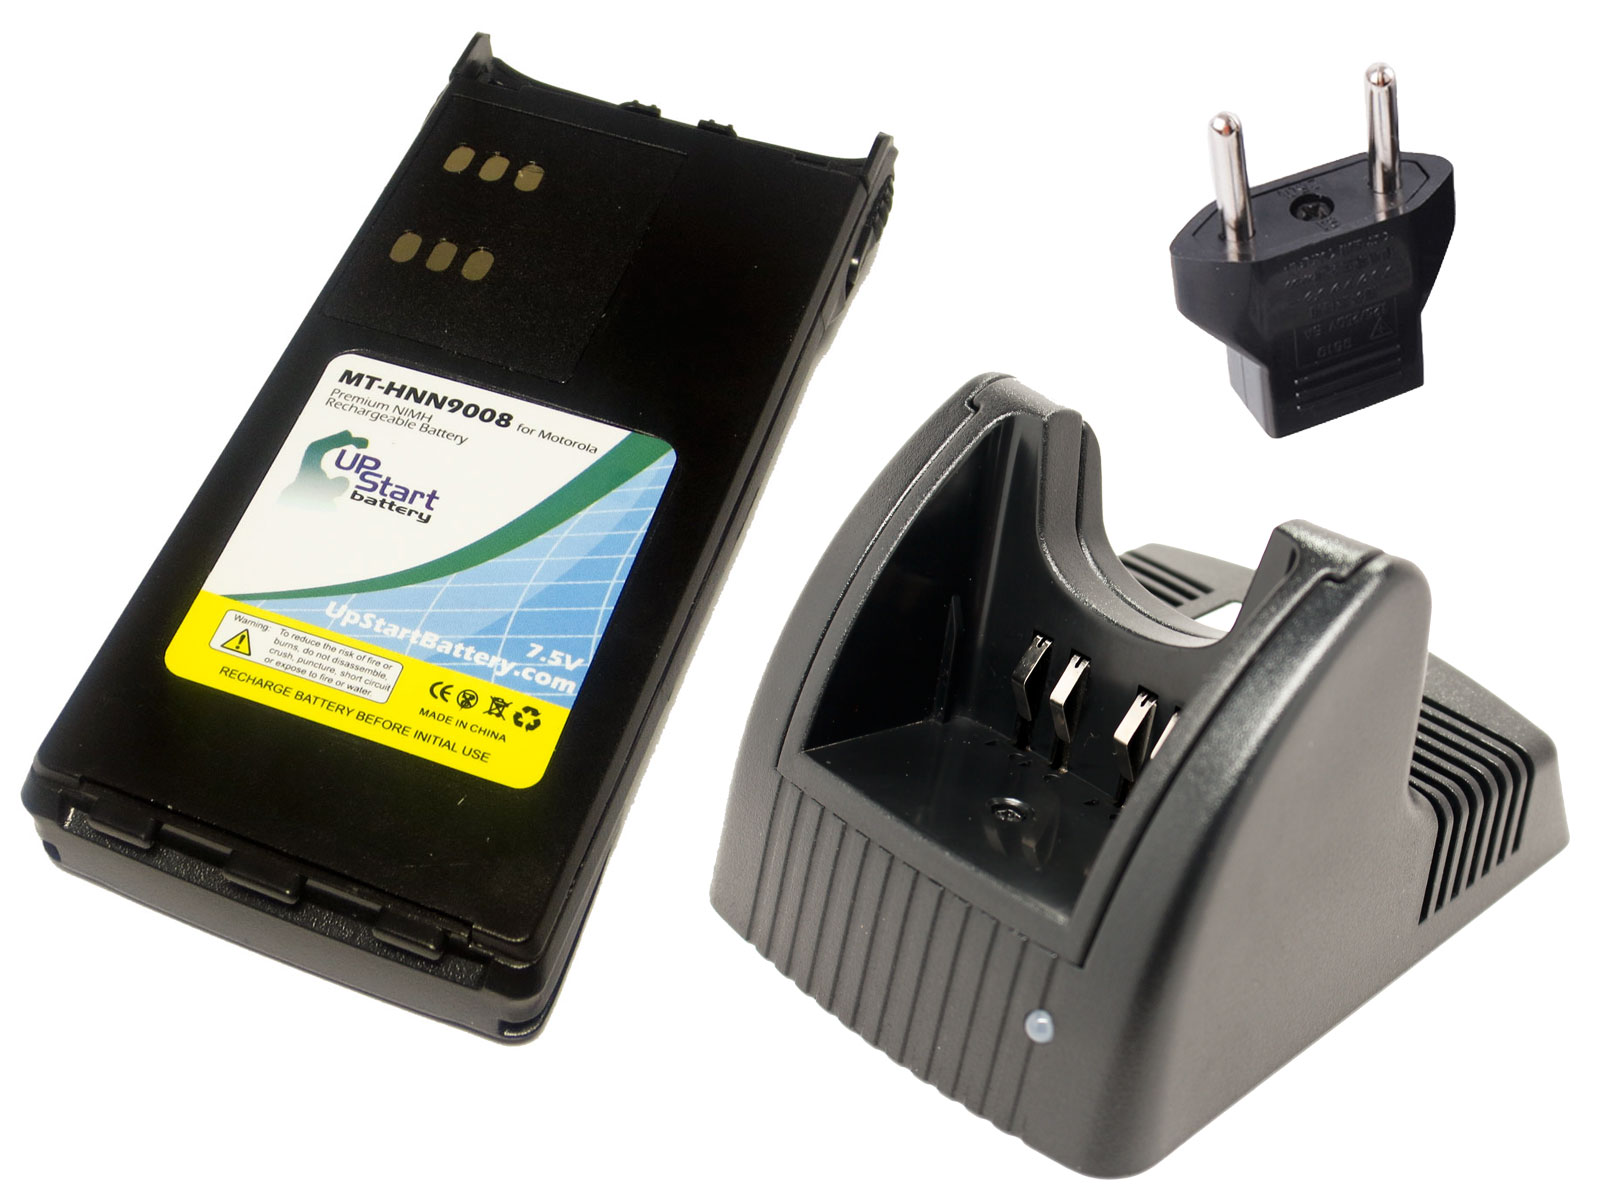 UpStart Battery Motorola Waris HT750 Battery and Charger with EU Adapter - Replacement for Motorola HNN9008A Radio Batteries and Chargers at Sears.com